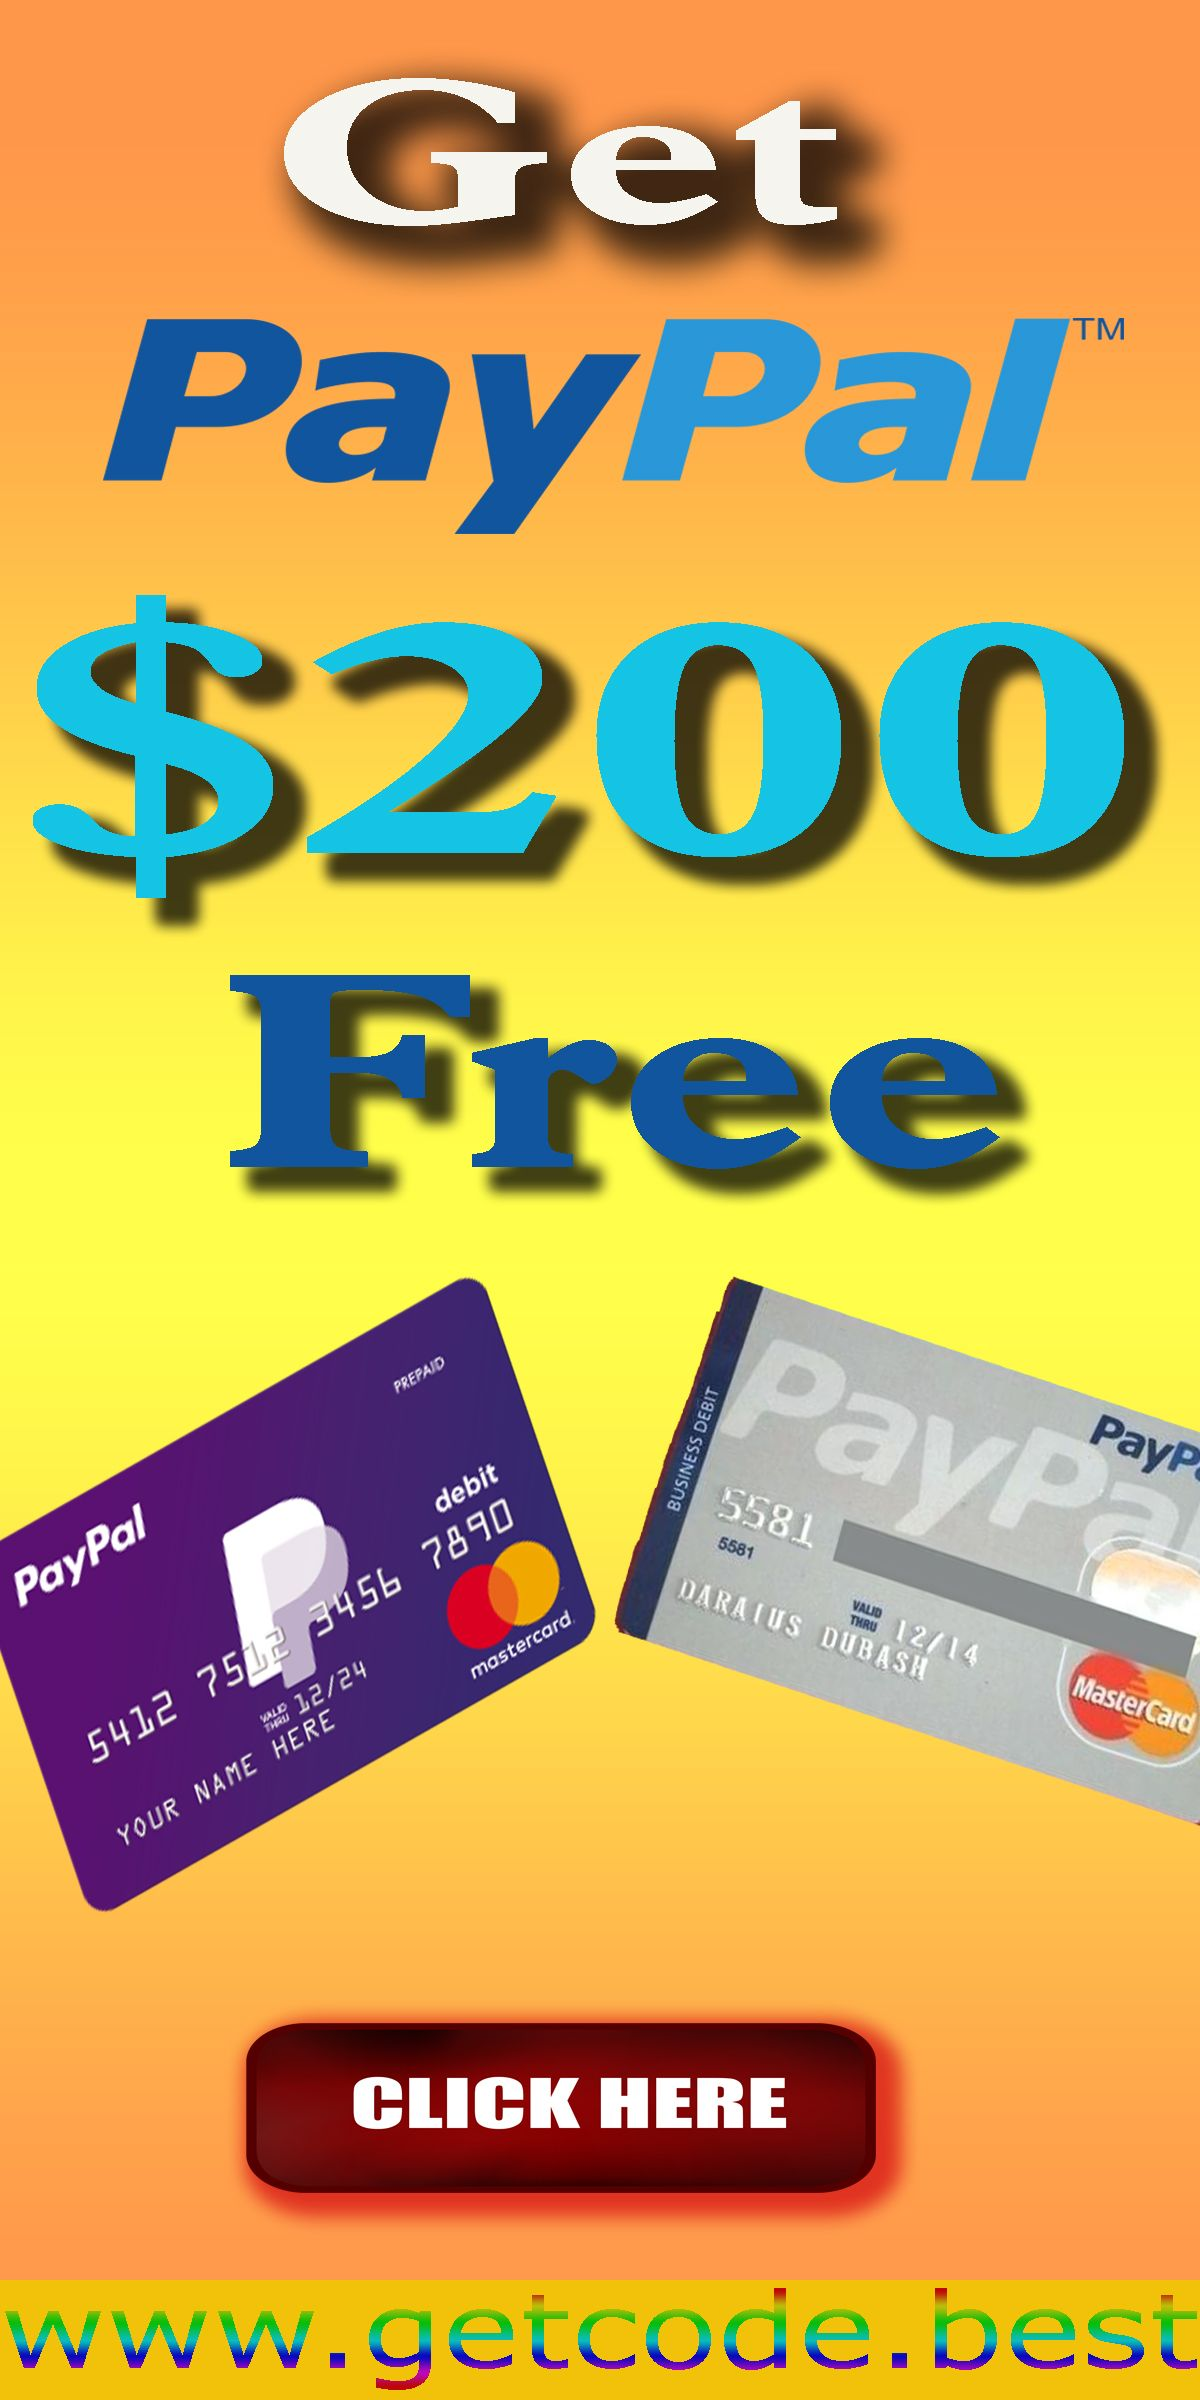 Free paypal gift card in 2020 paypal gift card free